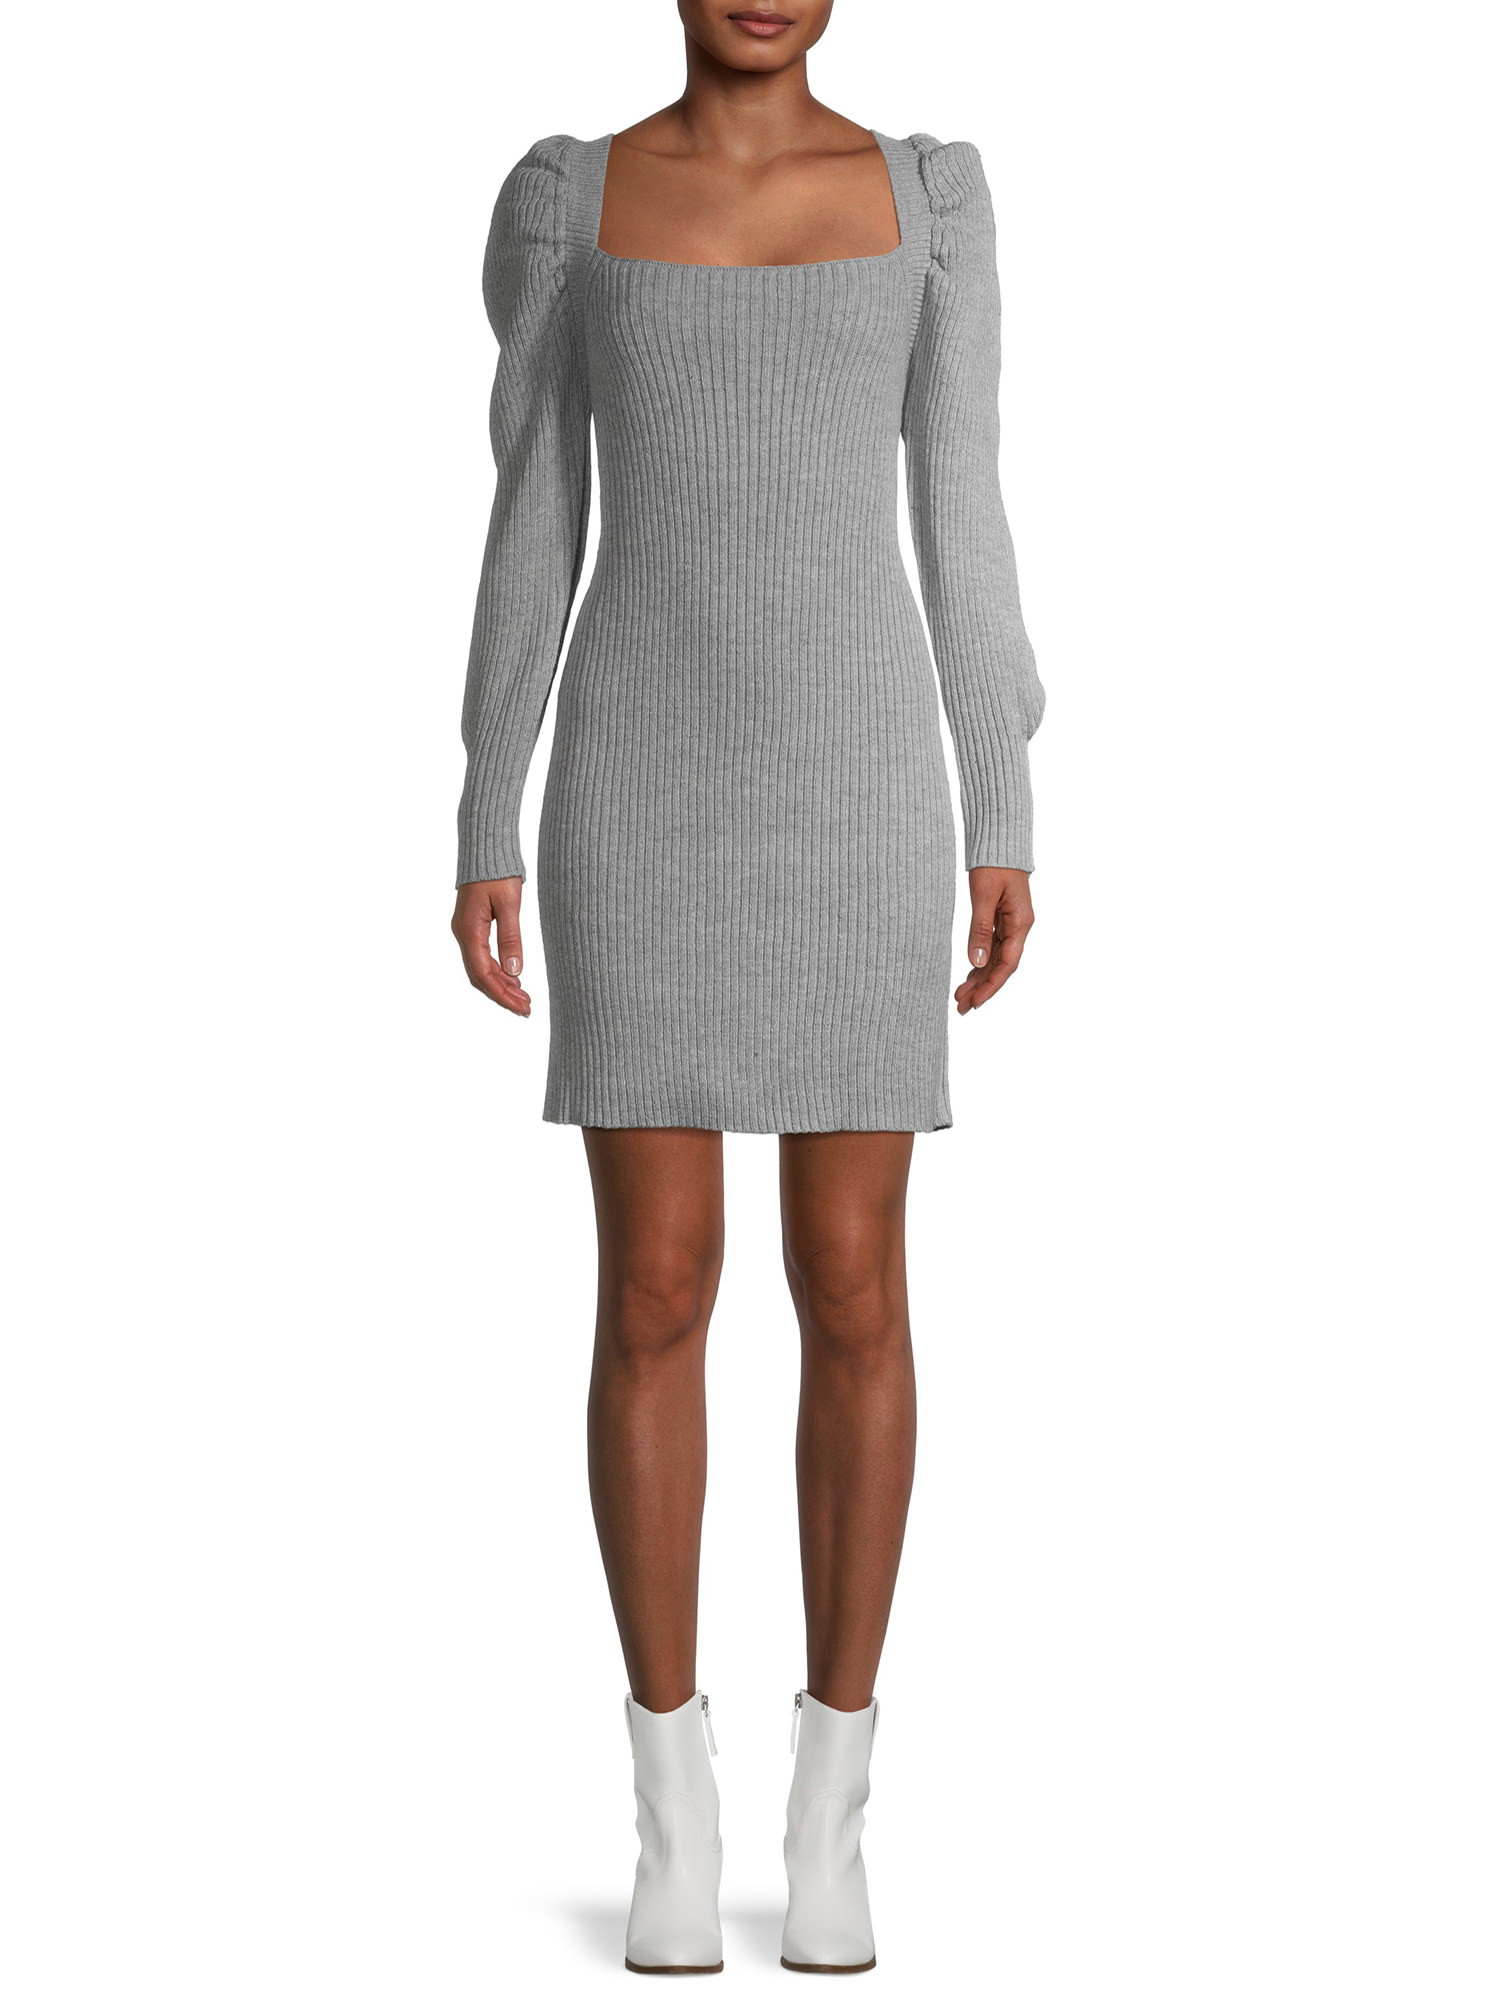 Model wearing ribbed grey dress with white booties